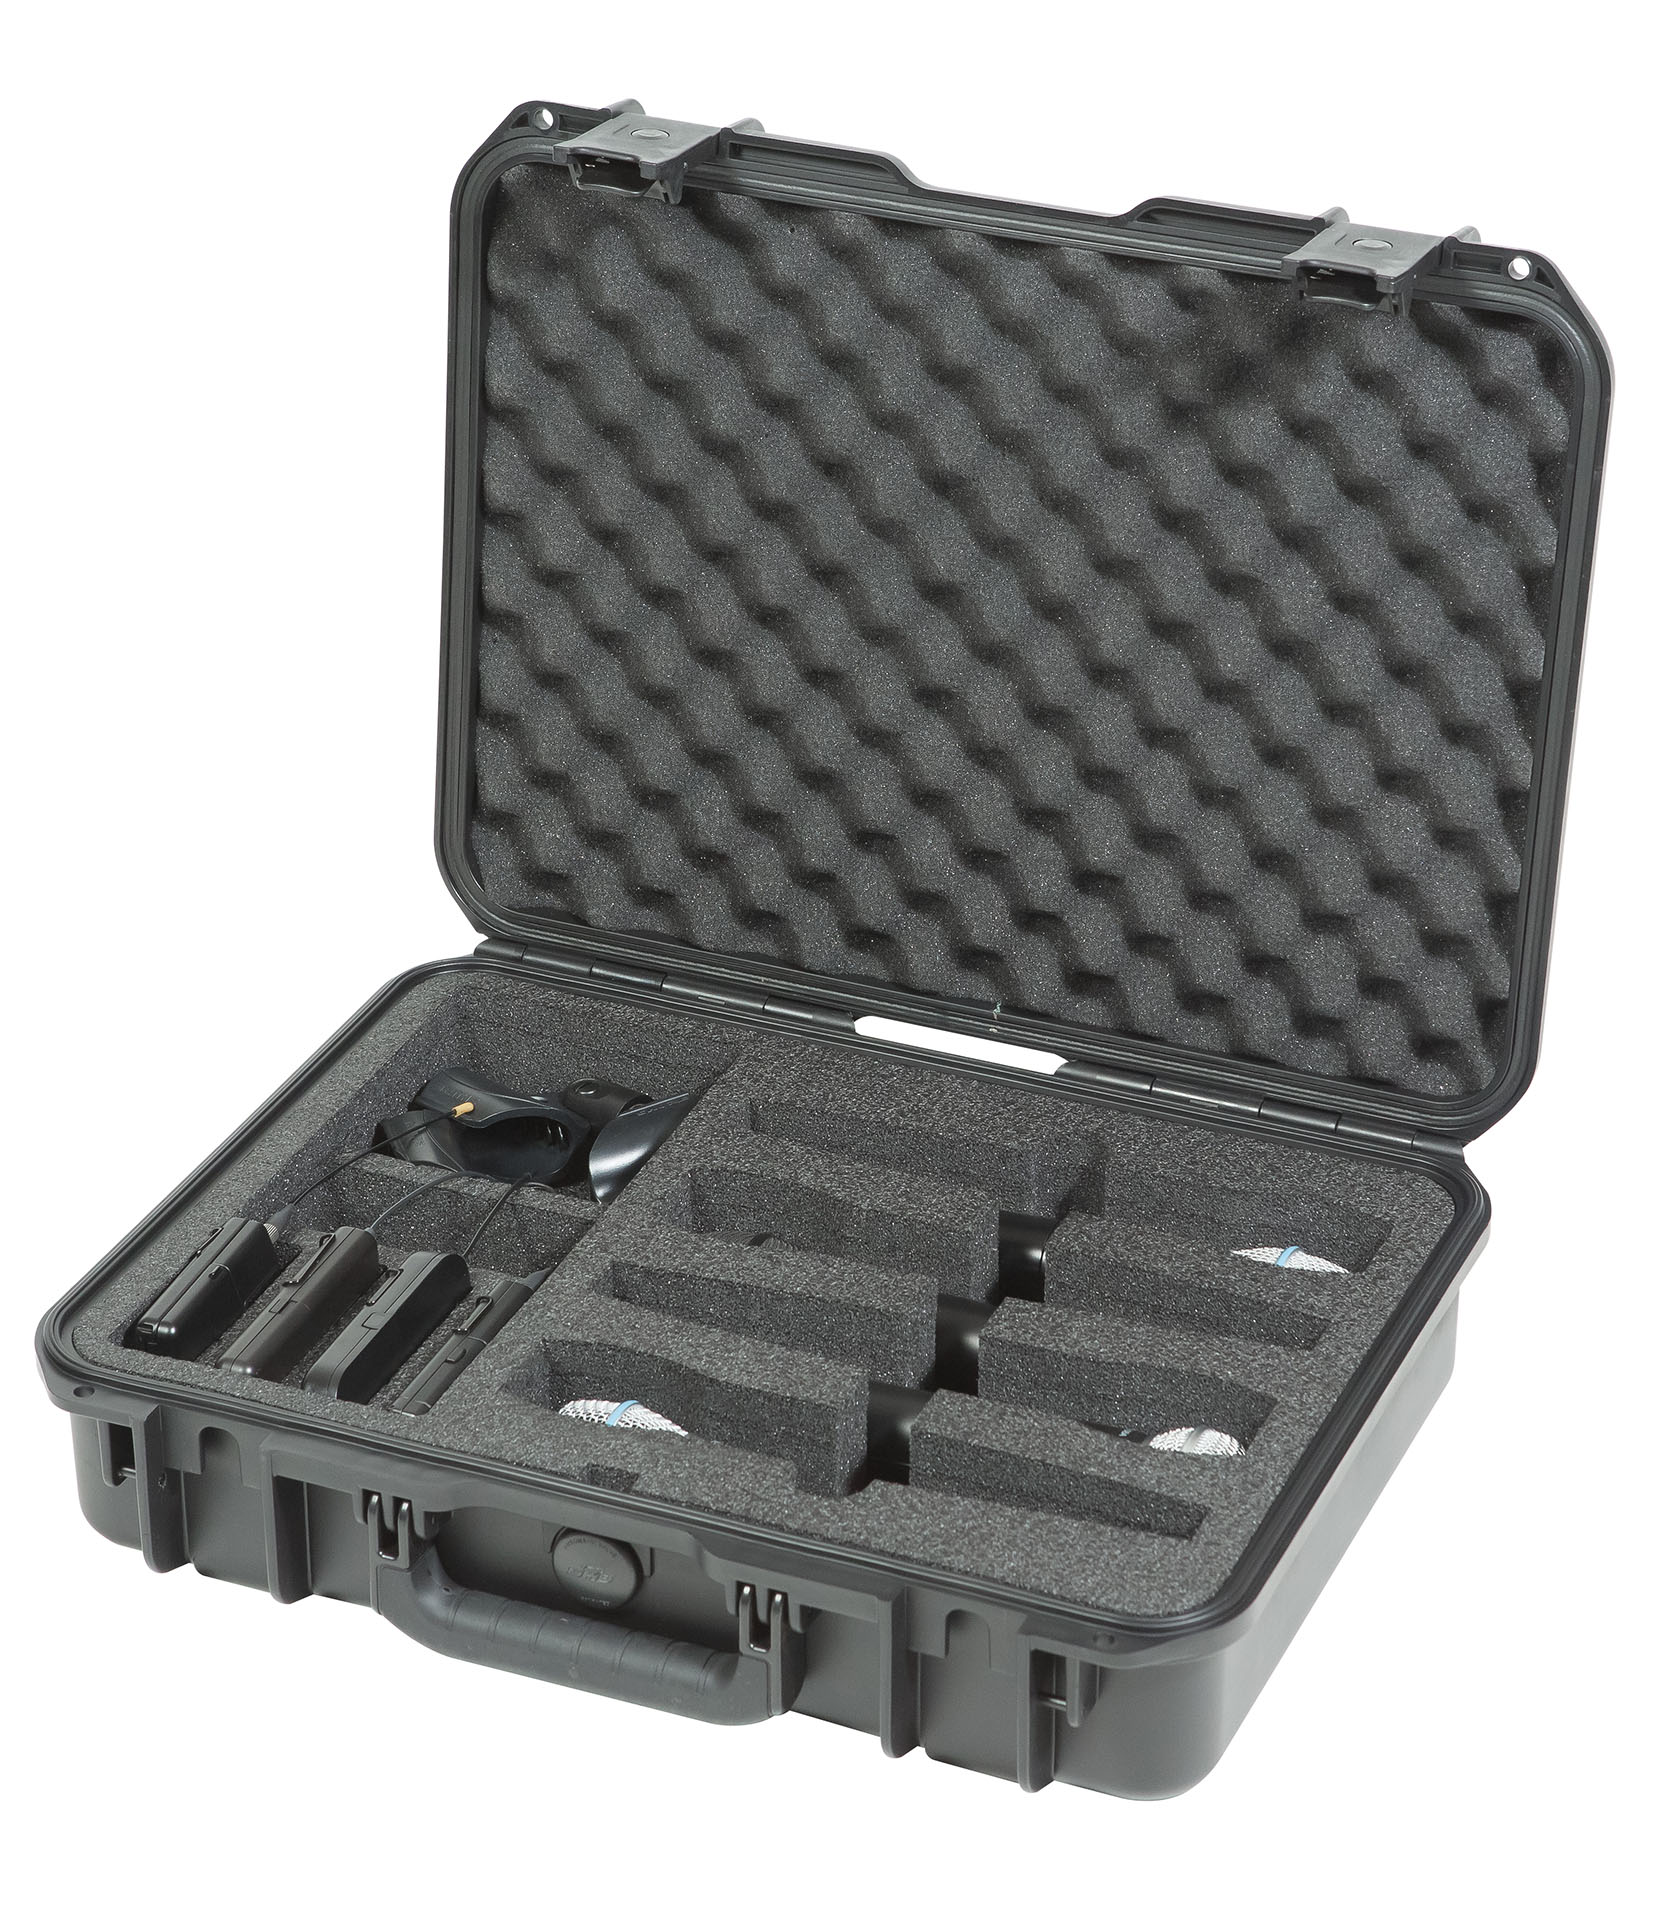 Melody House Musical Instruments Store - 3i 1813 5WMC iSeries Injection Molded Case for 4